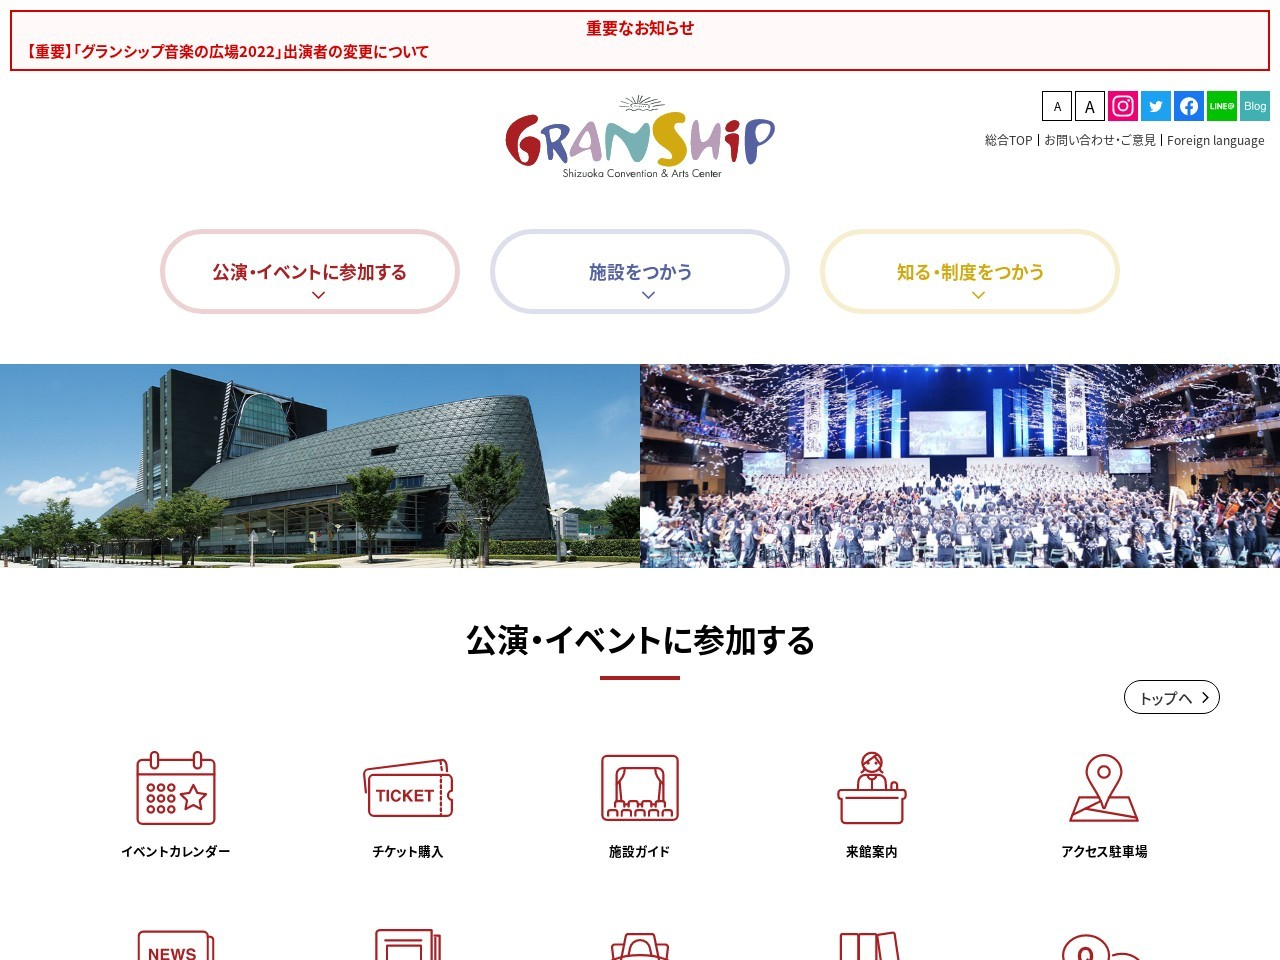 Screenshot of www.granship.or.jp